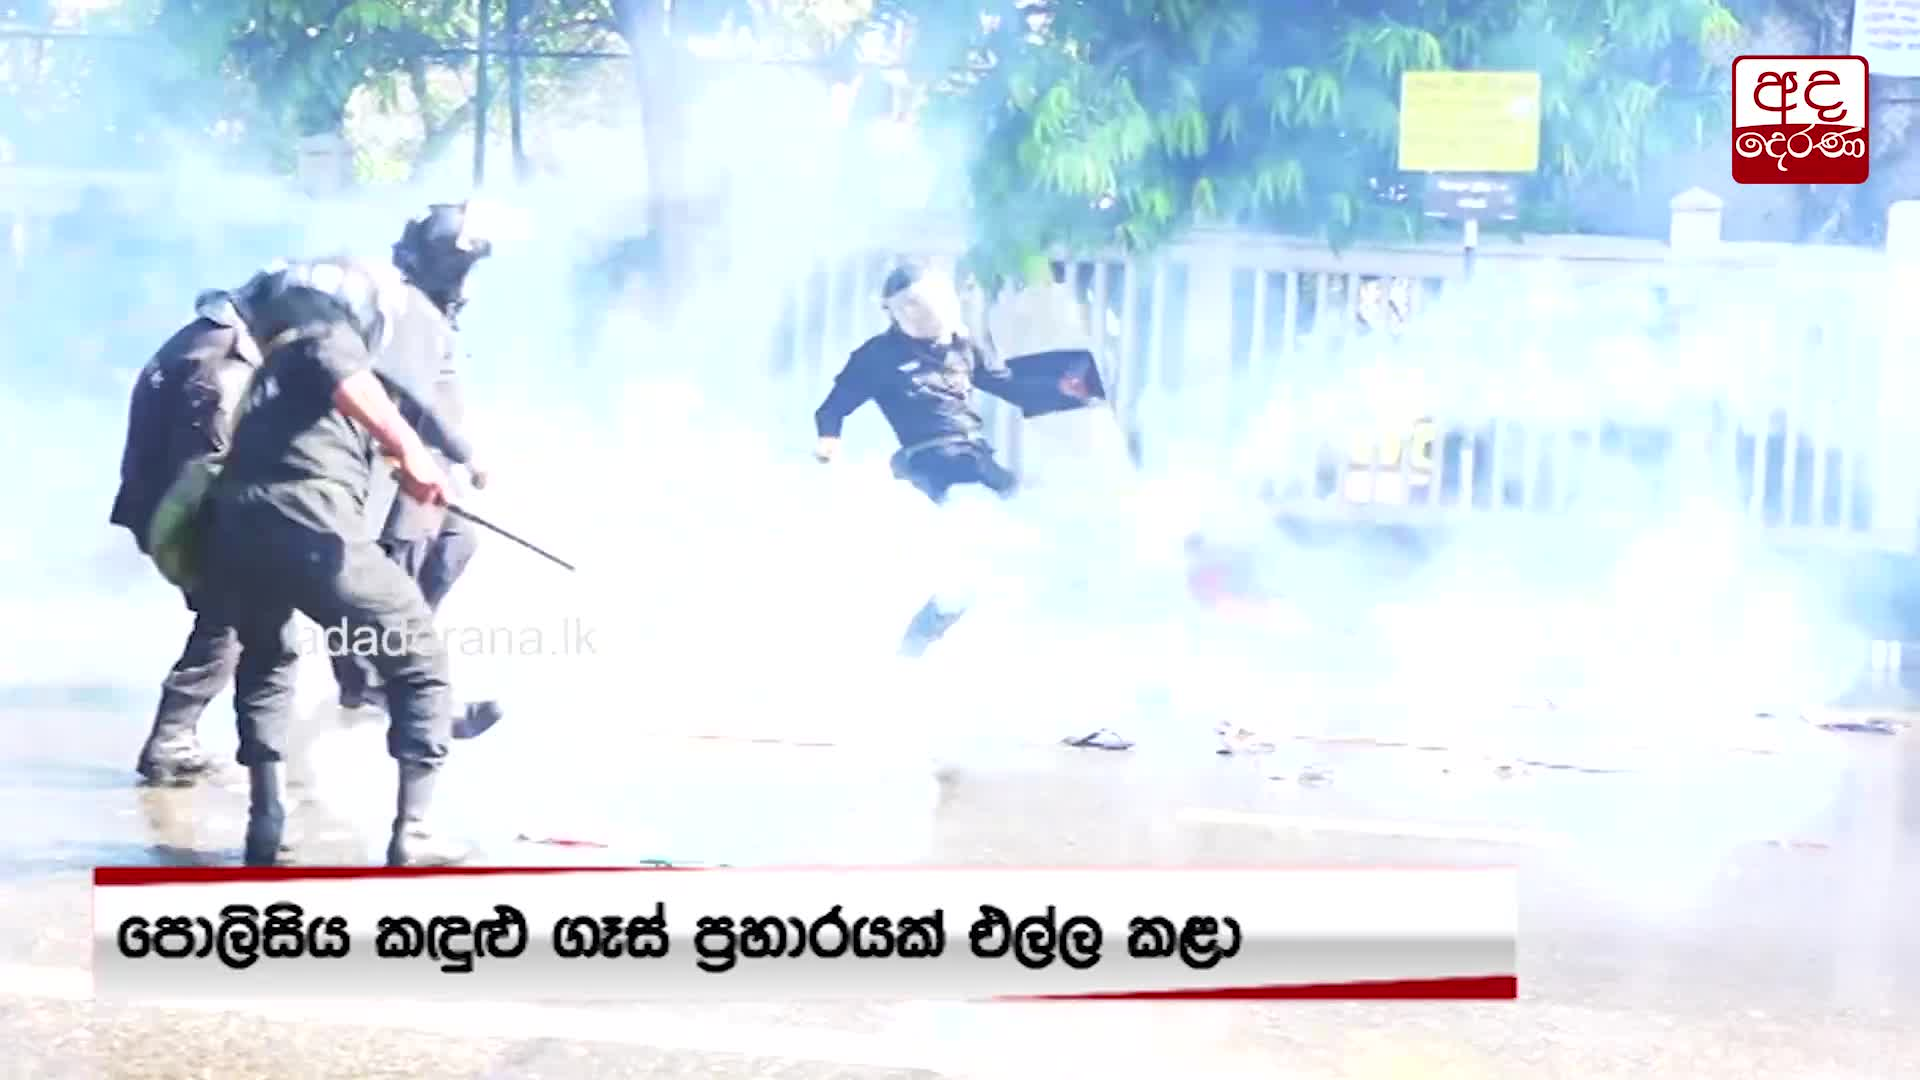 Police fire tear gas and water cannons at uni. students